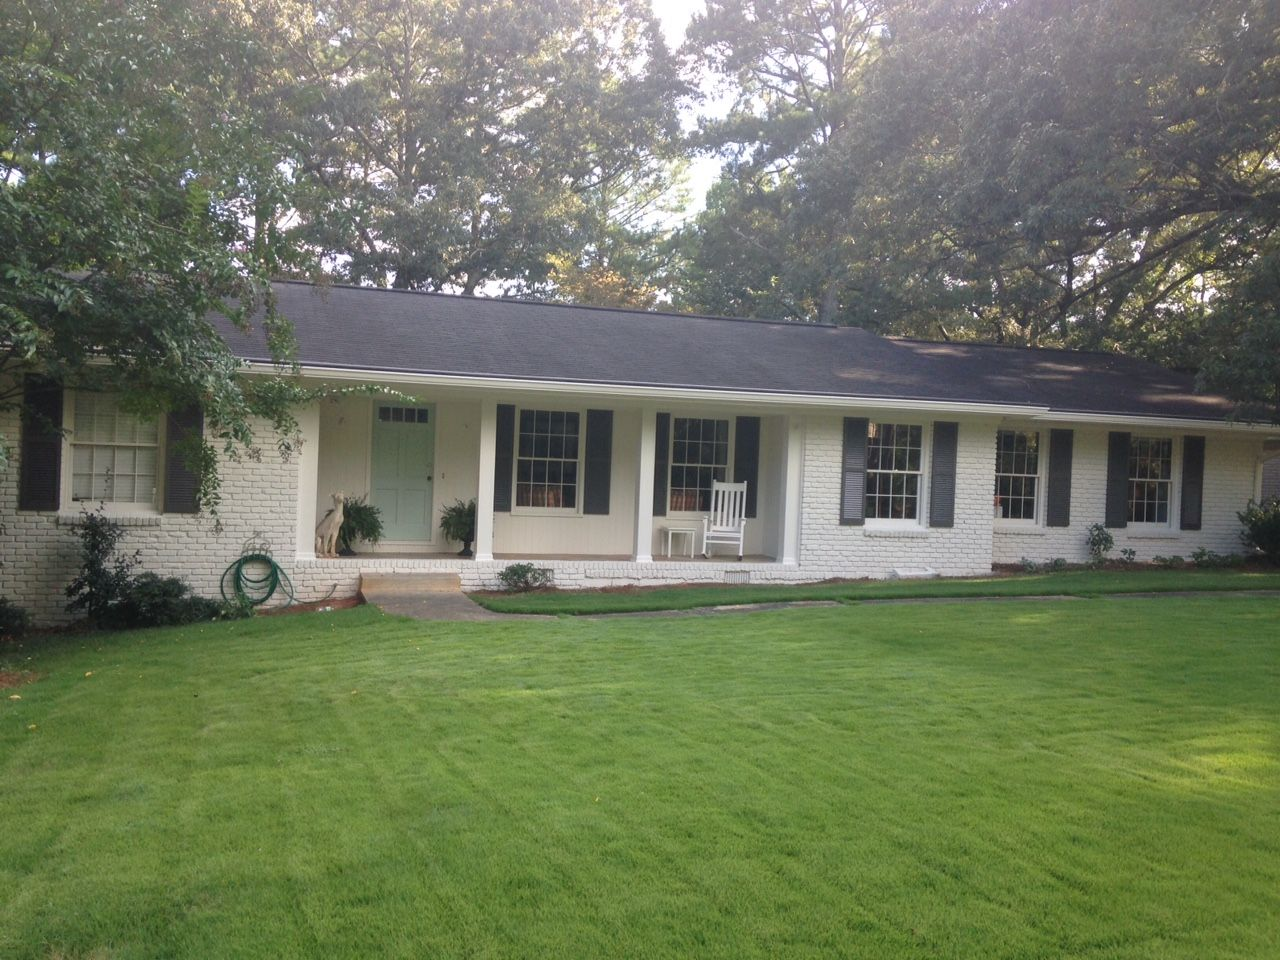 My house is painted paint colors grey brick houses - Benjamin moore gray mist exterior ...